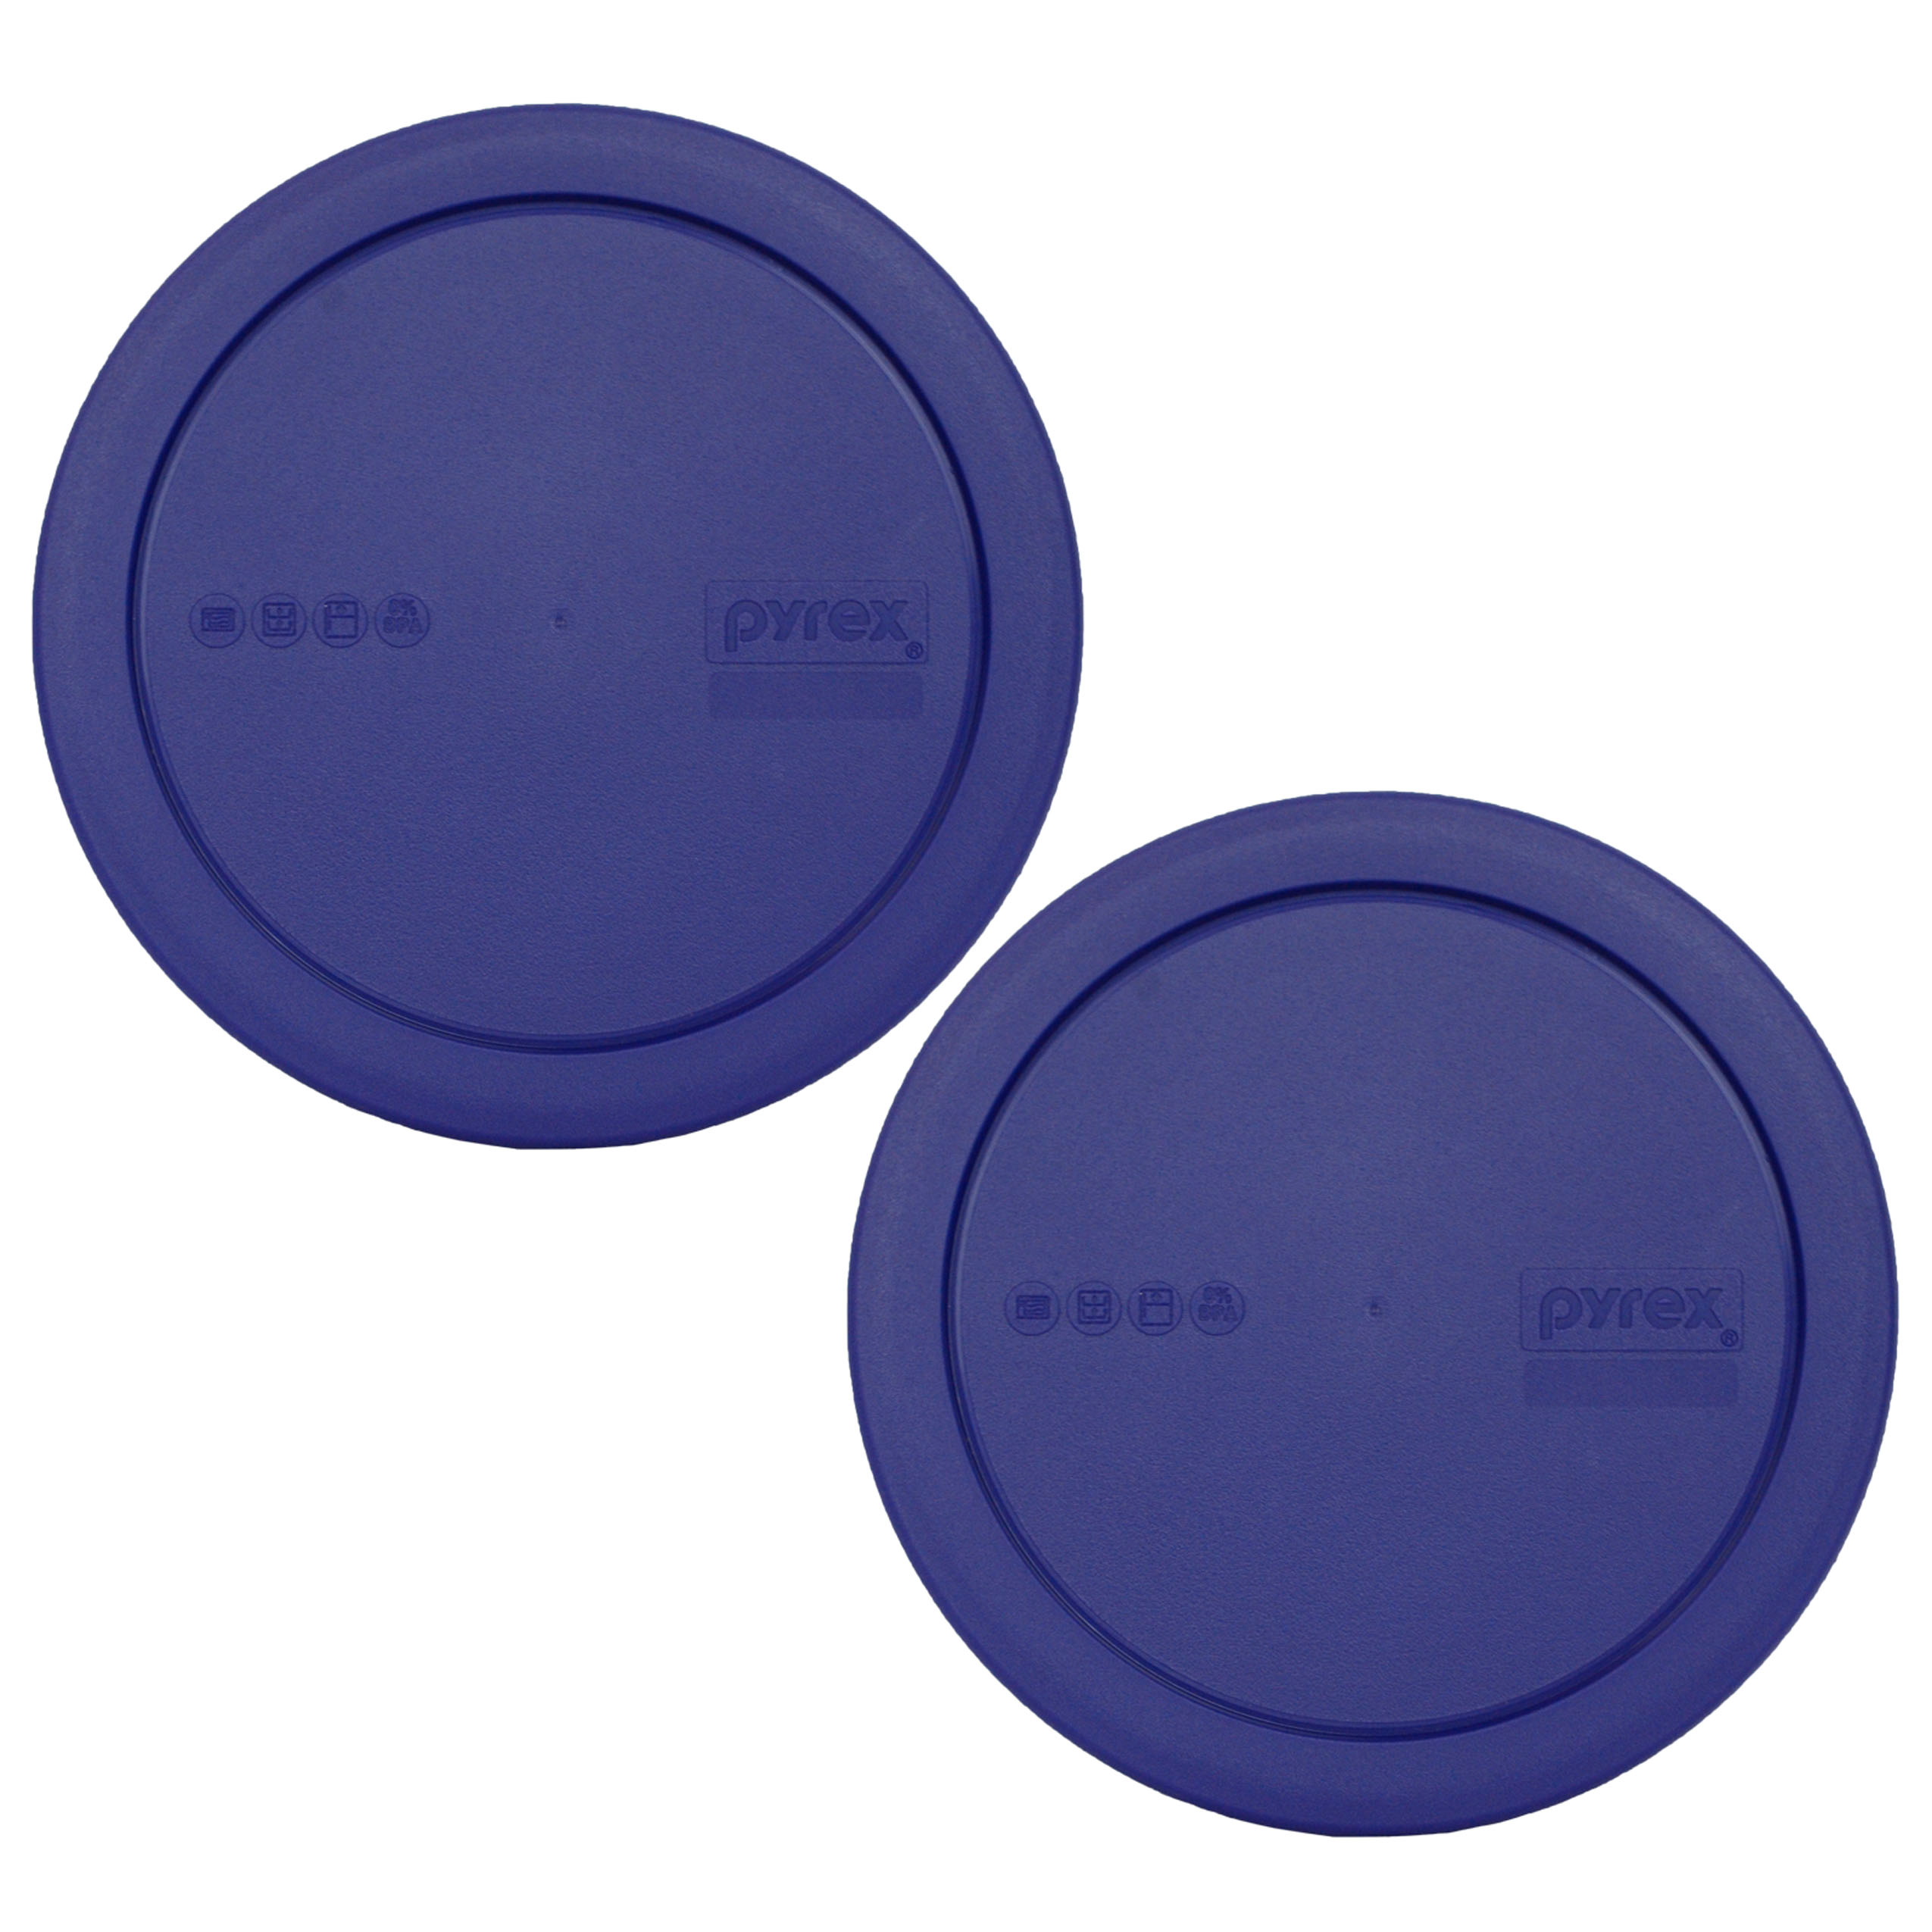 Pyrex Replacement Lid 322-PC Green Plastic Round Cover (2-pack) for Pyrex 322 1-Qt Mixing Bowl (Sold Separately)